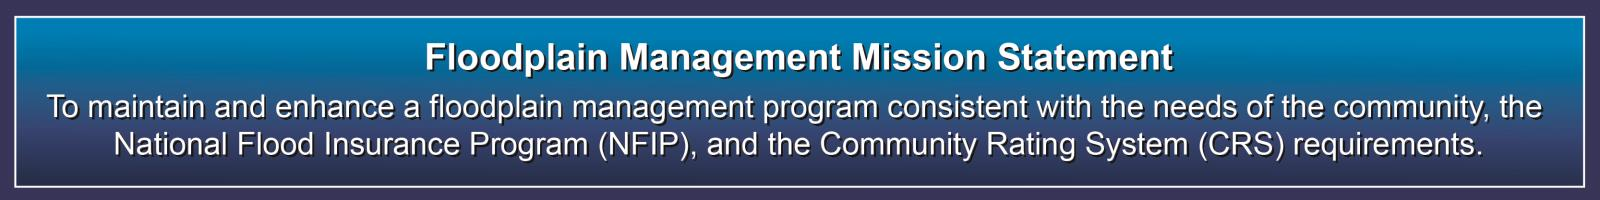 FLOODPLAIN MISSION STATEMENT